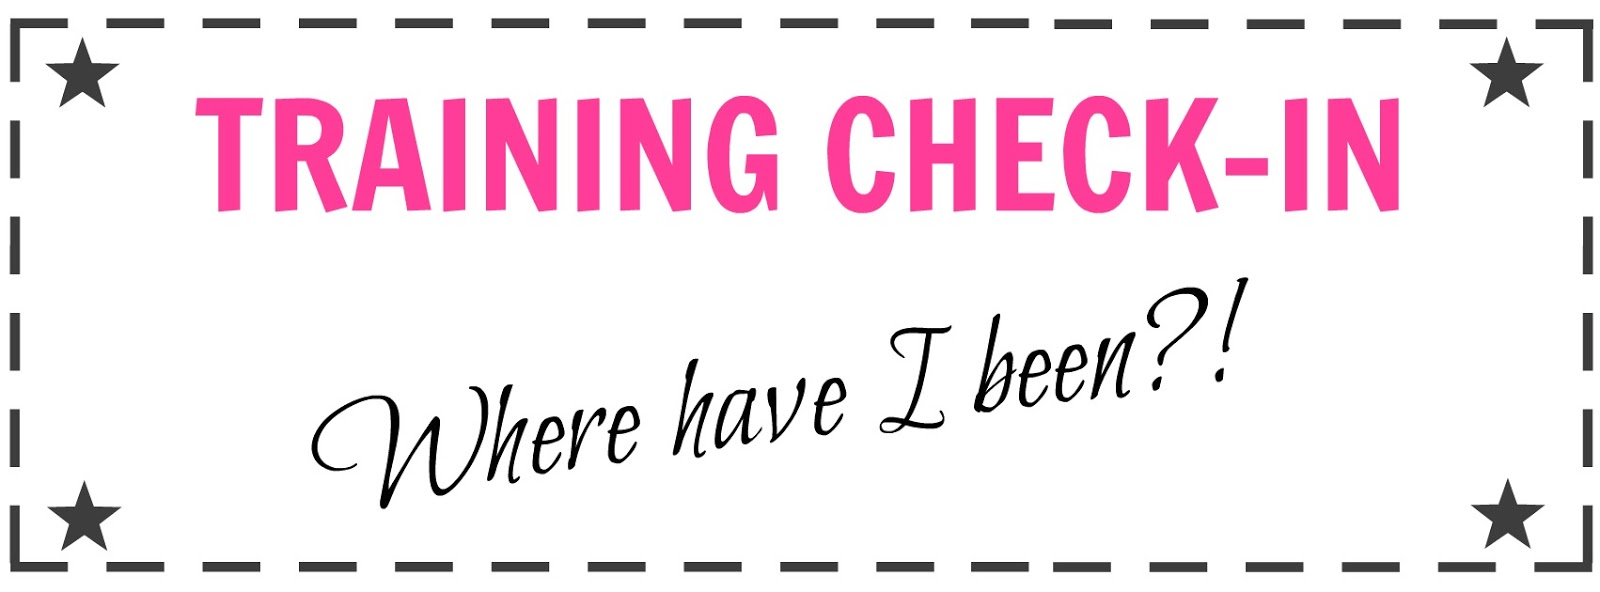 Training Check-In: Where have I been?